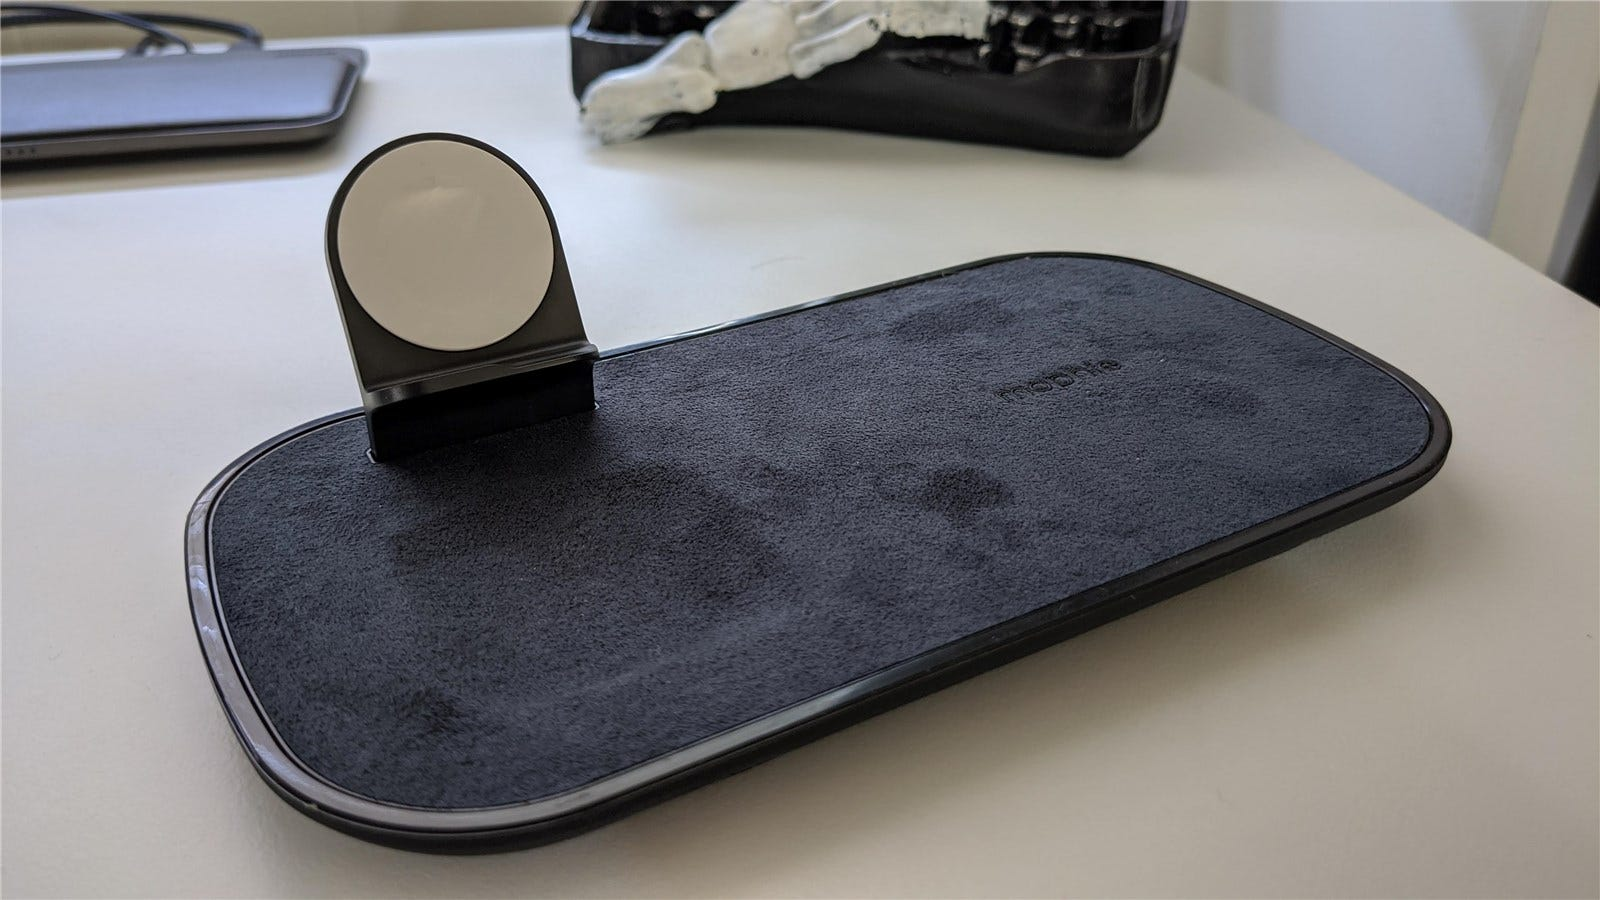 The Mophie 3-in-1 Wireless Charging Pad